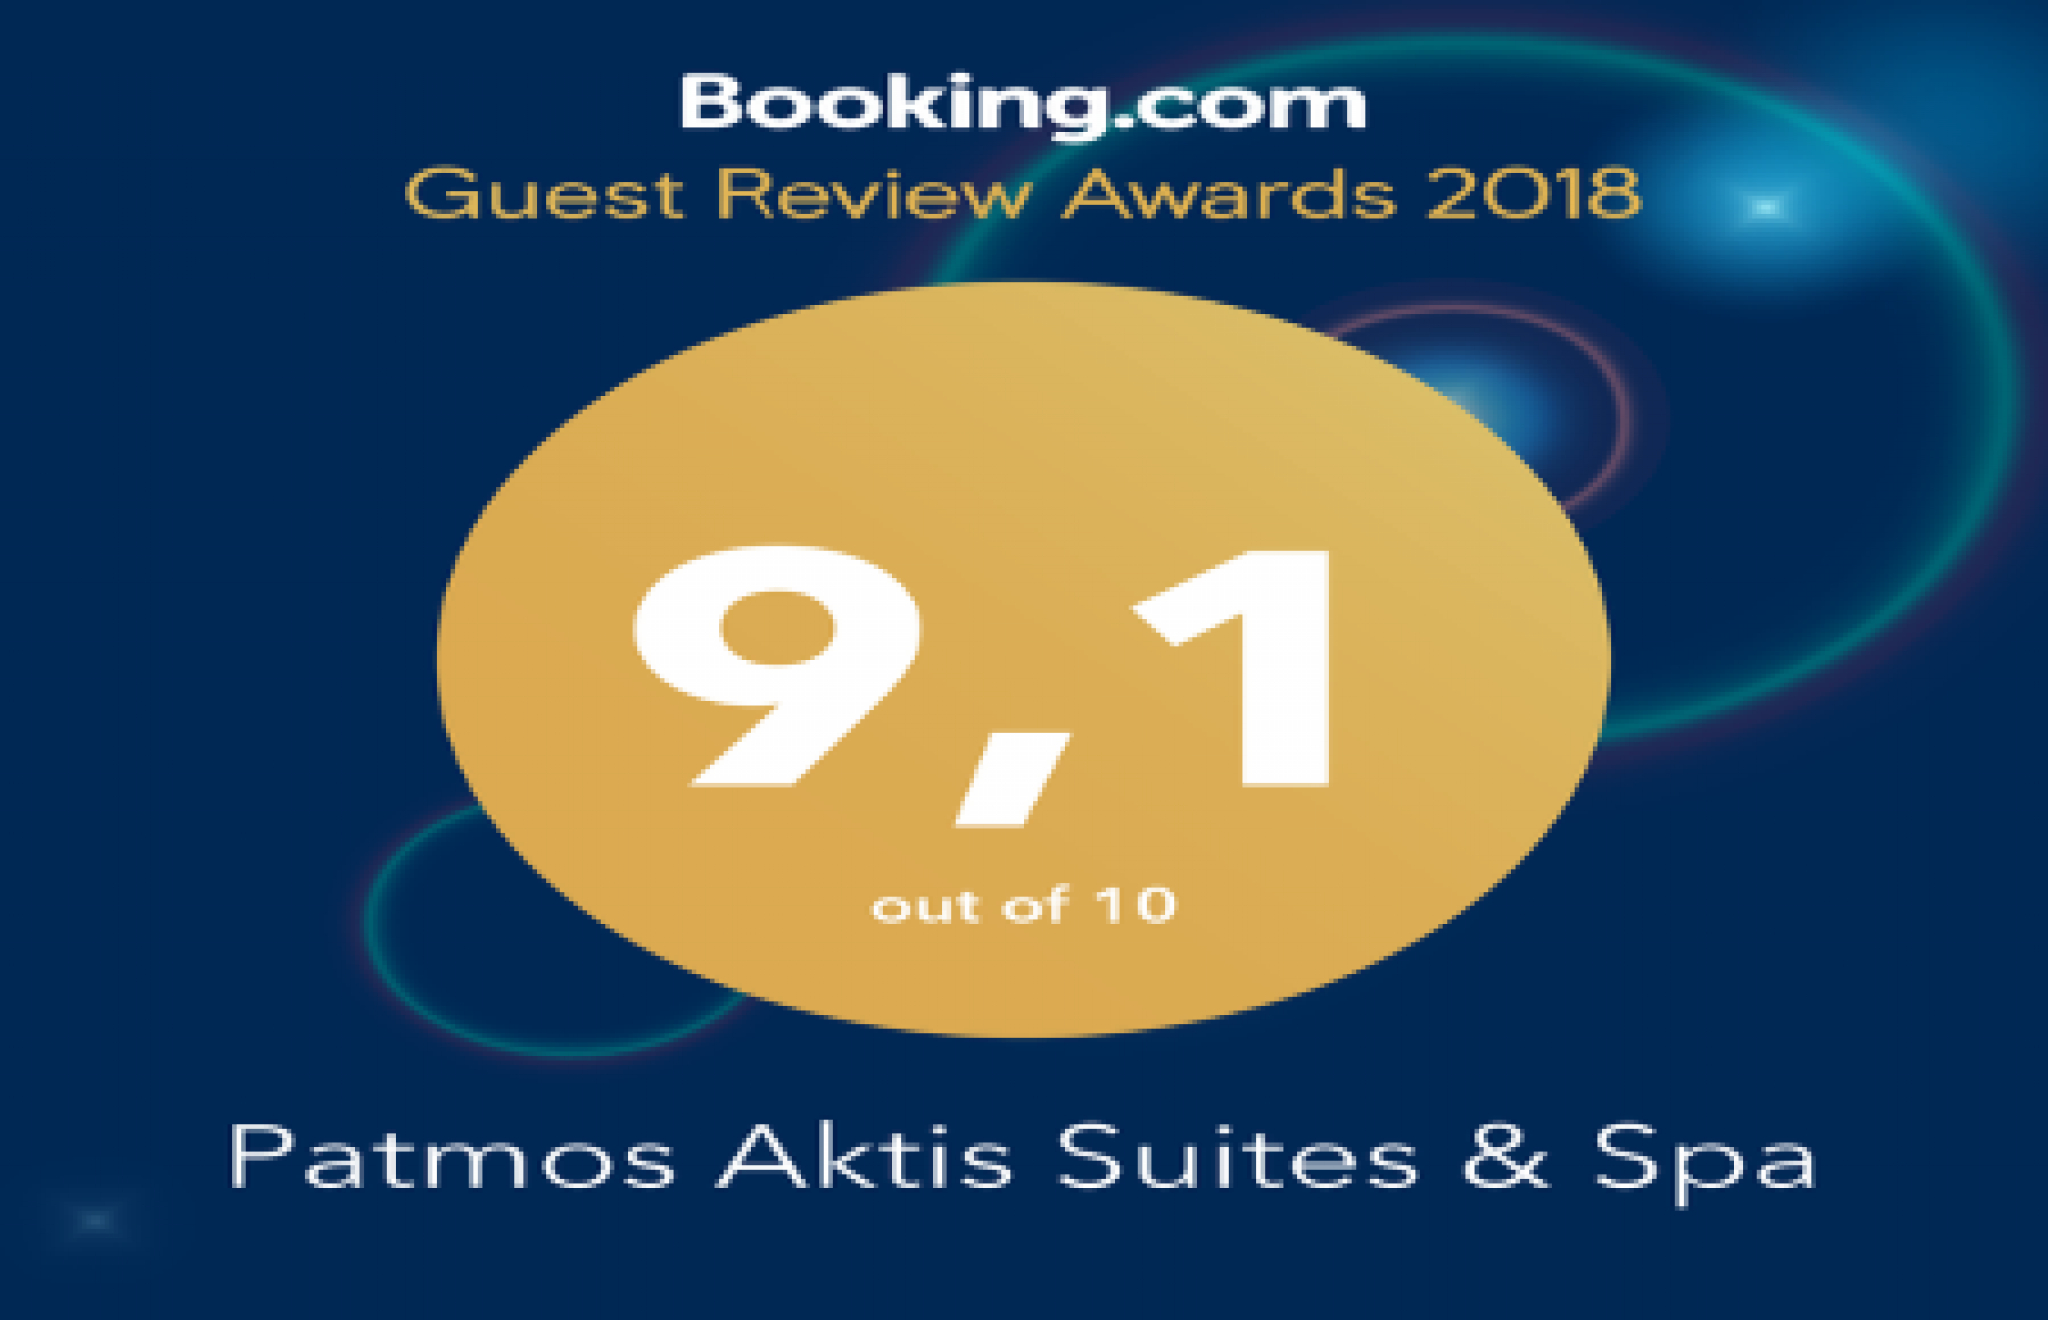 2018 Guest Review Award